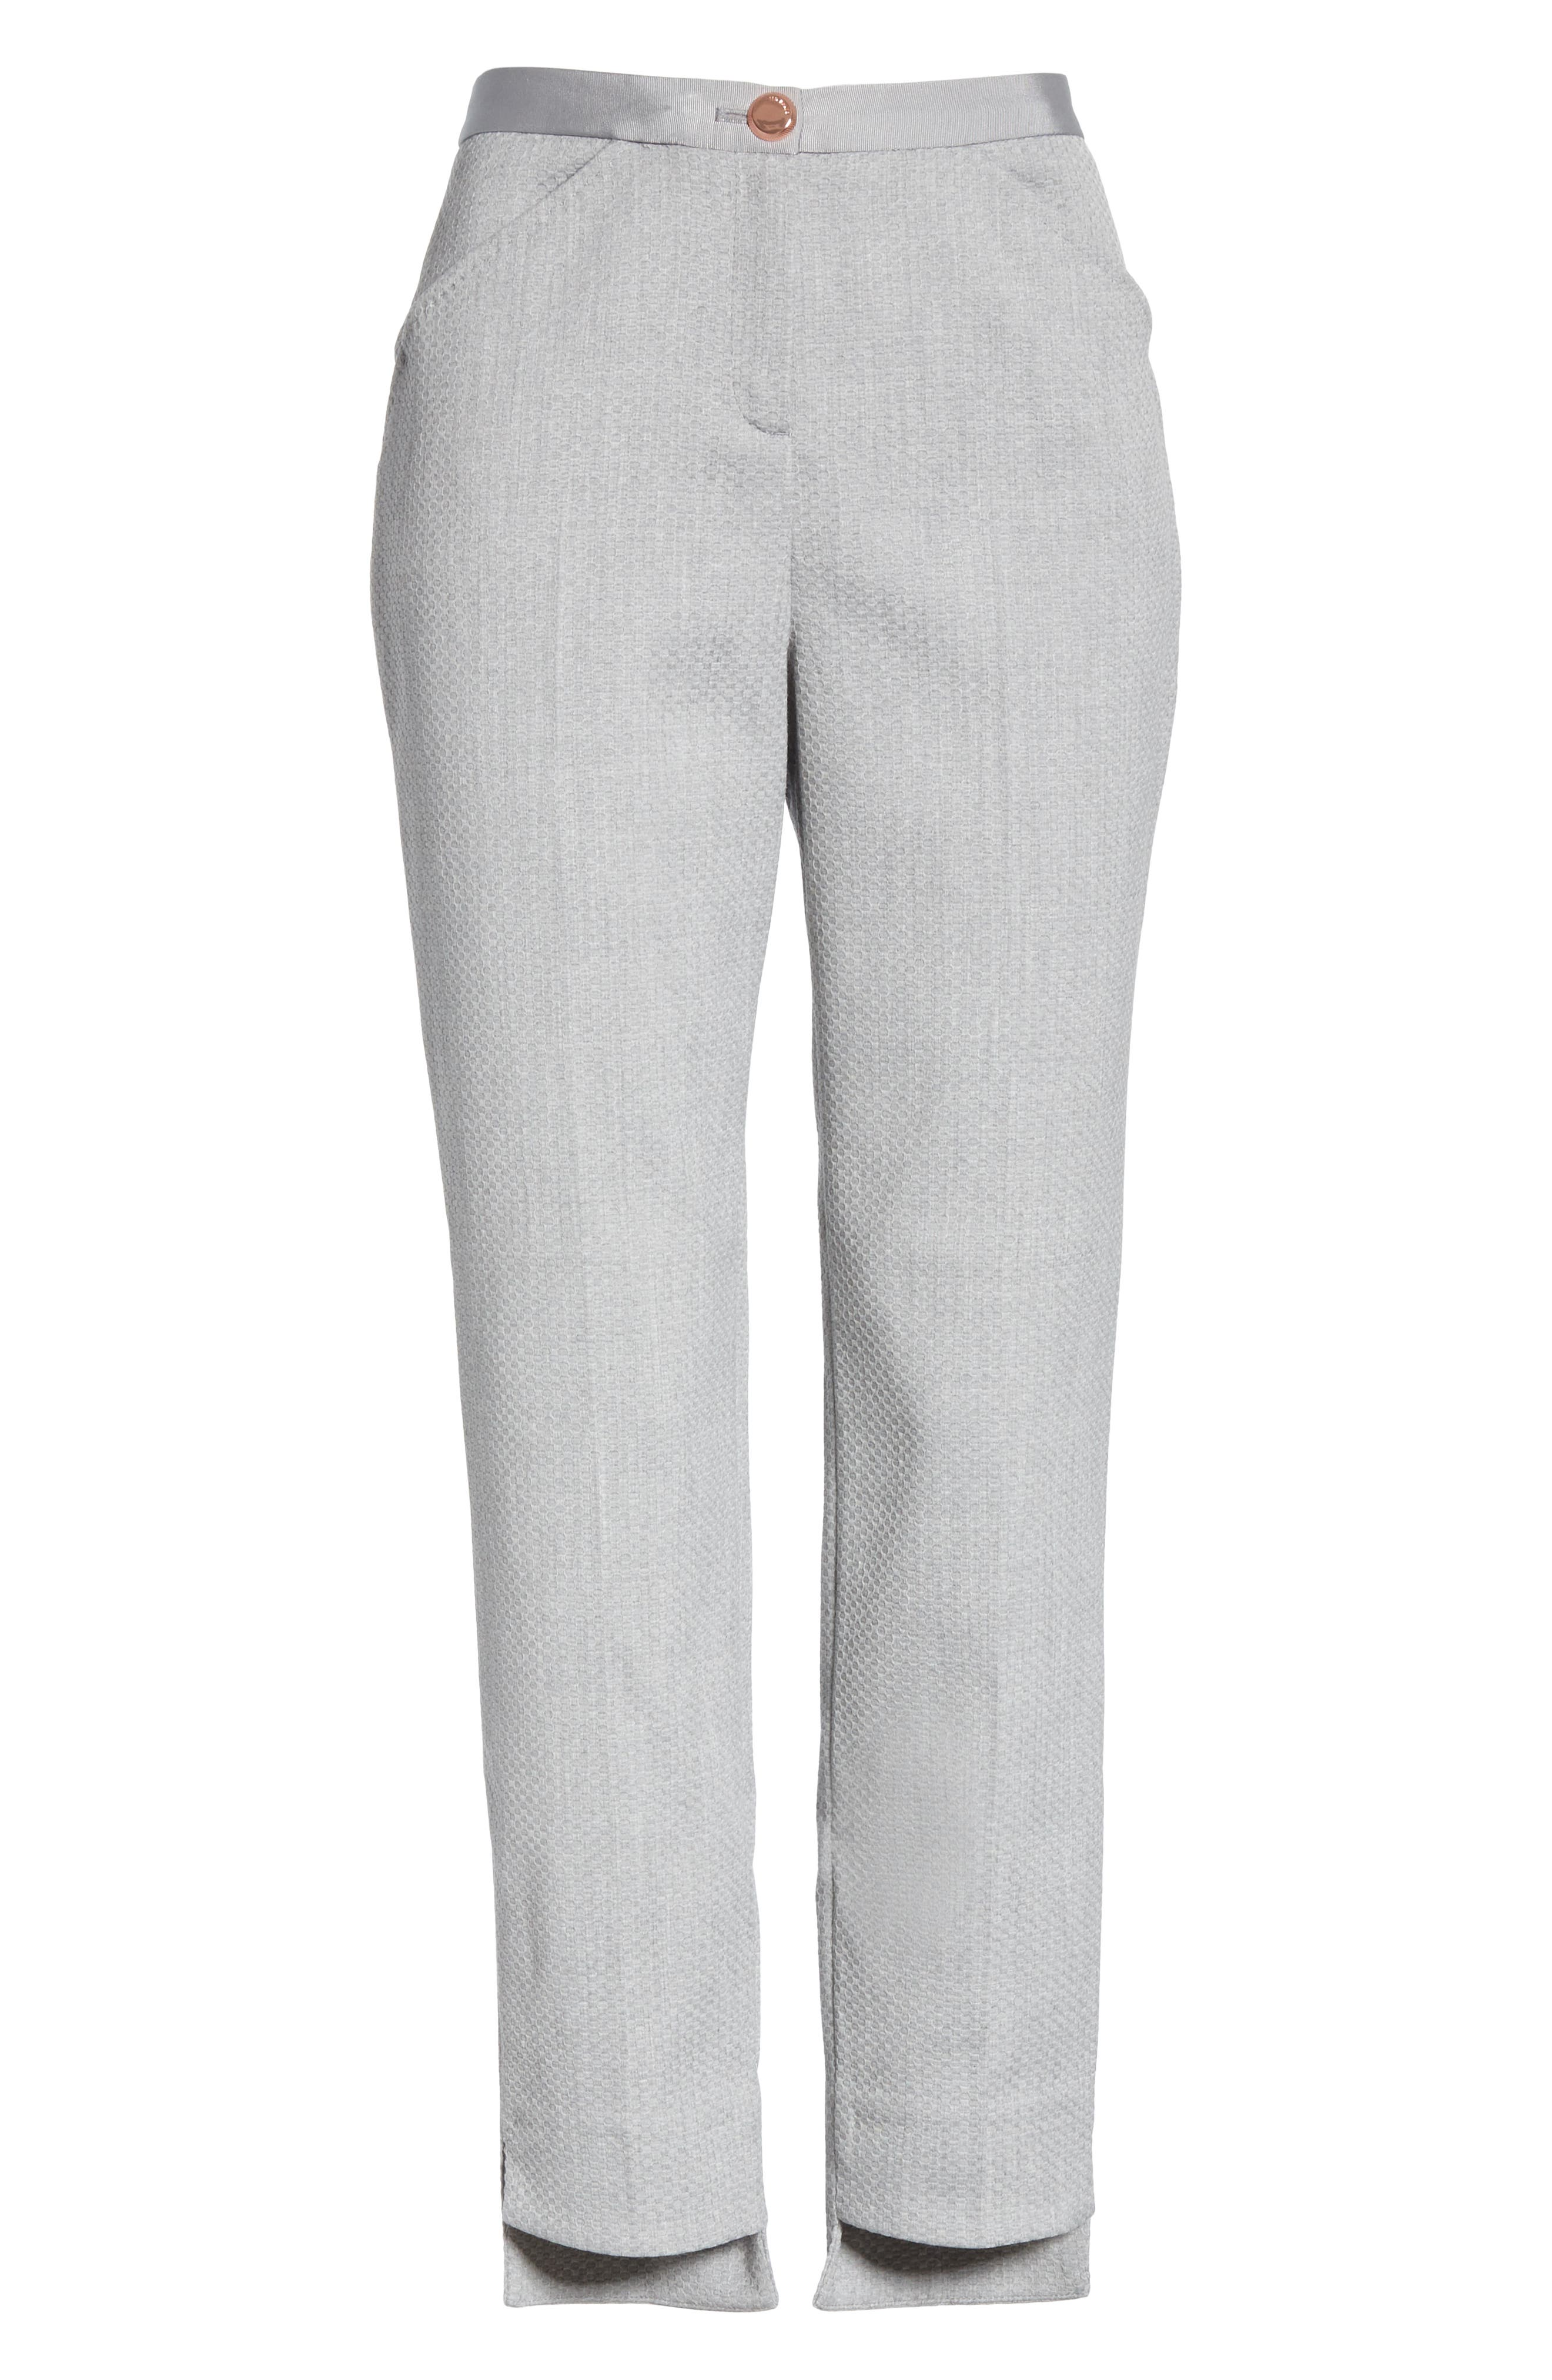 Ted Working Title Daizit Skinny Crop Pants,                             Alternate thumbnail 6, color,                             030